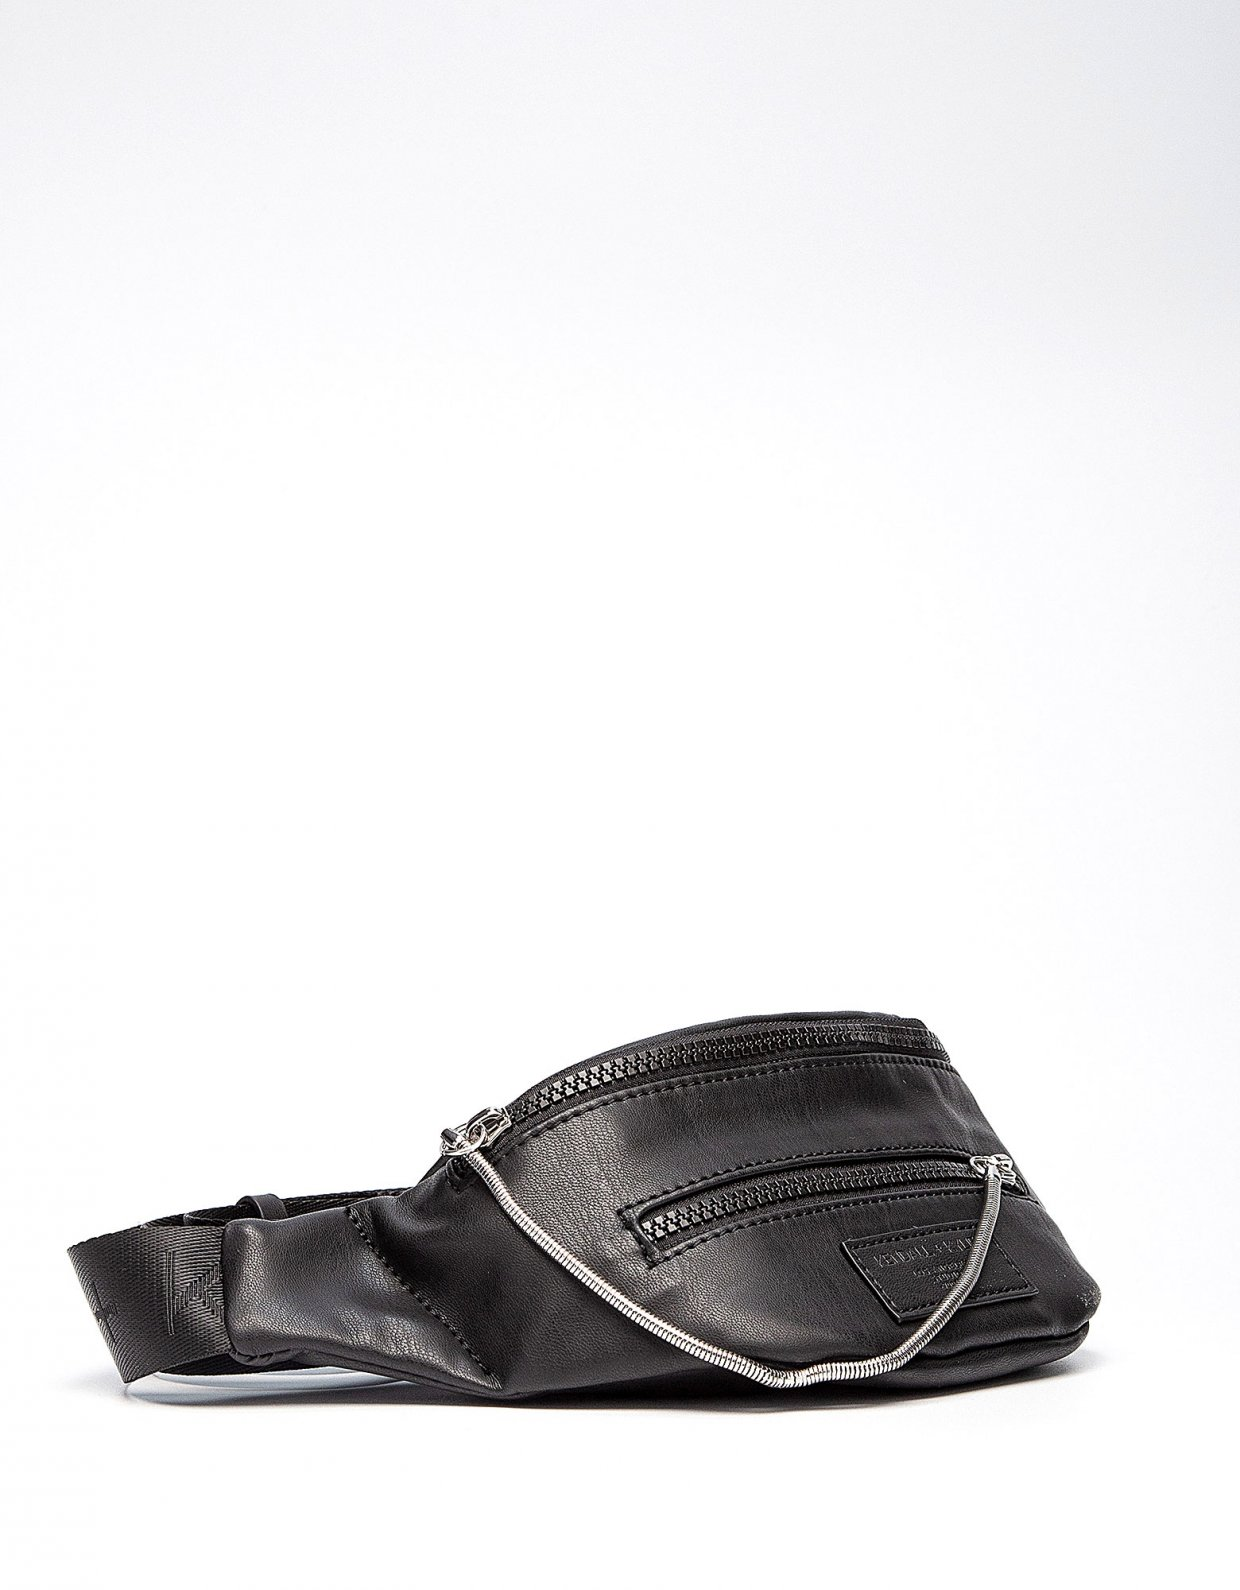 Kendall + Kylie Carina fanny pack black